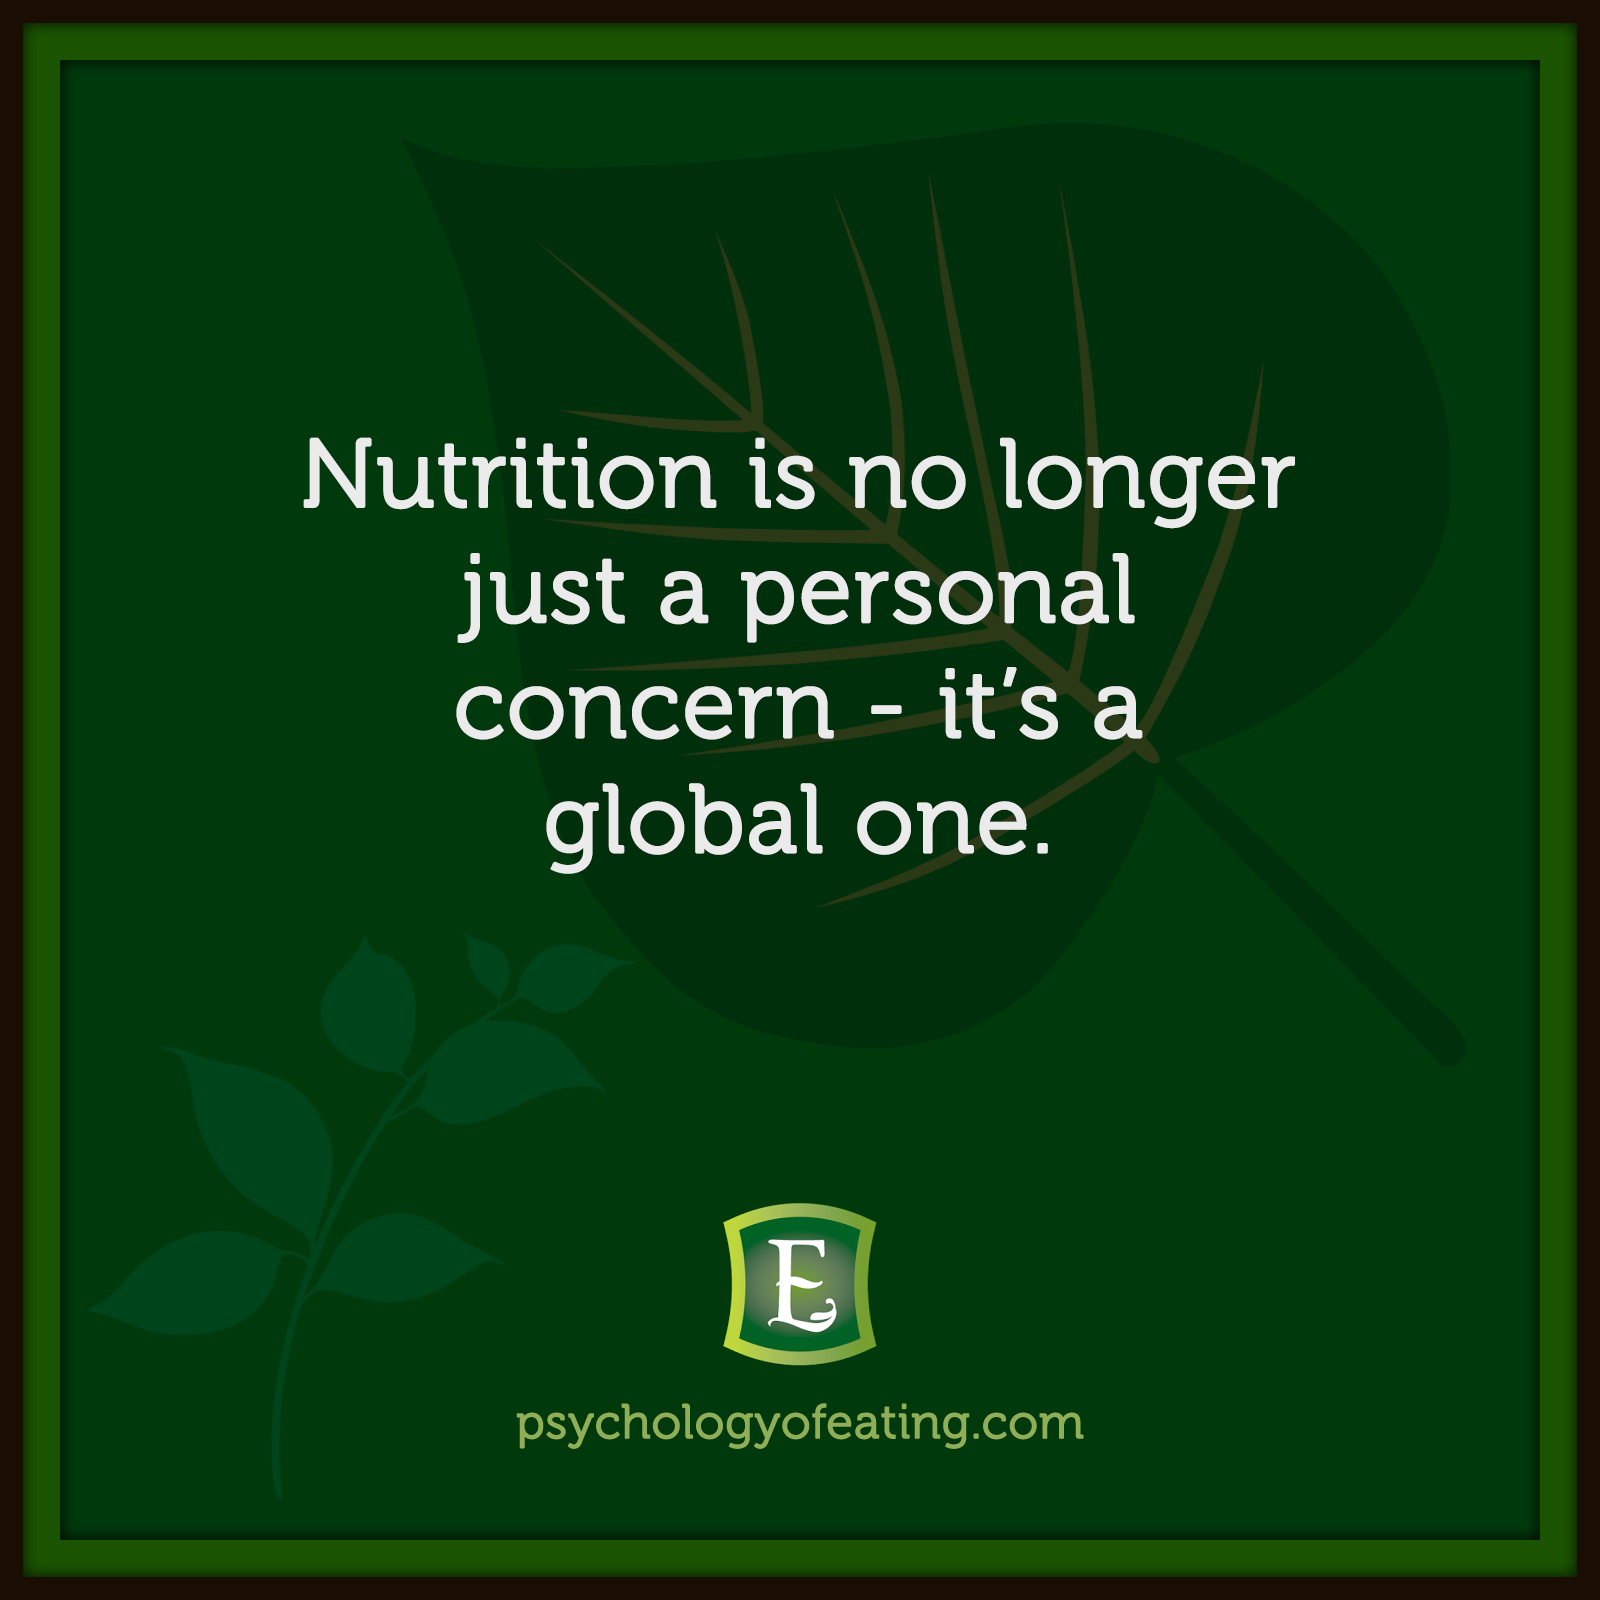 Nutrition is no longer just a personal concern - it's a global one. #health #nutrition #eatingpsychology #IPE